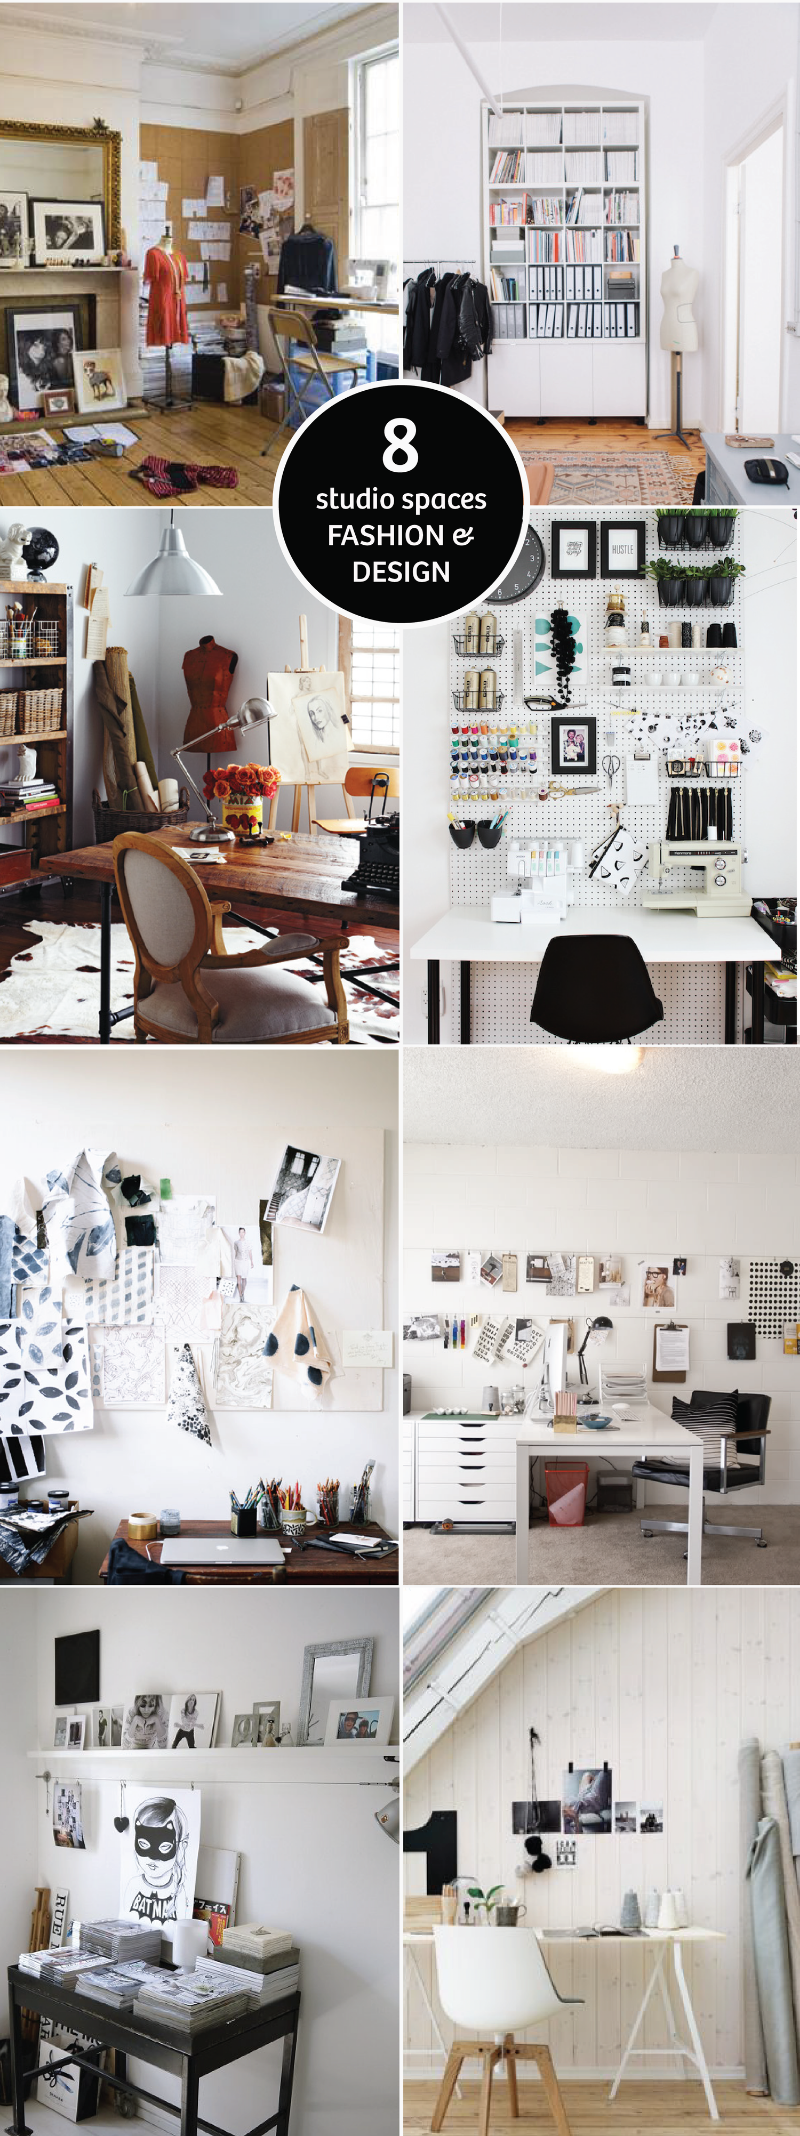 Images: (Top Left) Fashion Designer Jemima French's home studioviaThe Independent, (Top Right) Johanna Schneider's home studioviaFreunde von Freunde, (Upper Middle Left) viaStyle at Home, (Upper Middle Right) Mandy Pellegerin's home studio viaFabric Paper Glue, (Lower Middle Left) Rebecca Atwood's home studio viaApartment 34, (Lower Middle Right) Lindsay Stetson's home studio viaEva Black Design, (Bottom Left) viaVosgesparis, (Bottom Right) viaHomedit